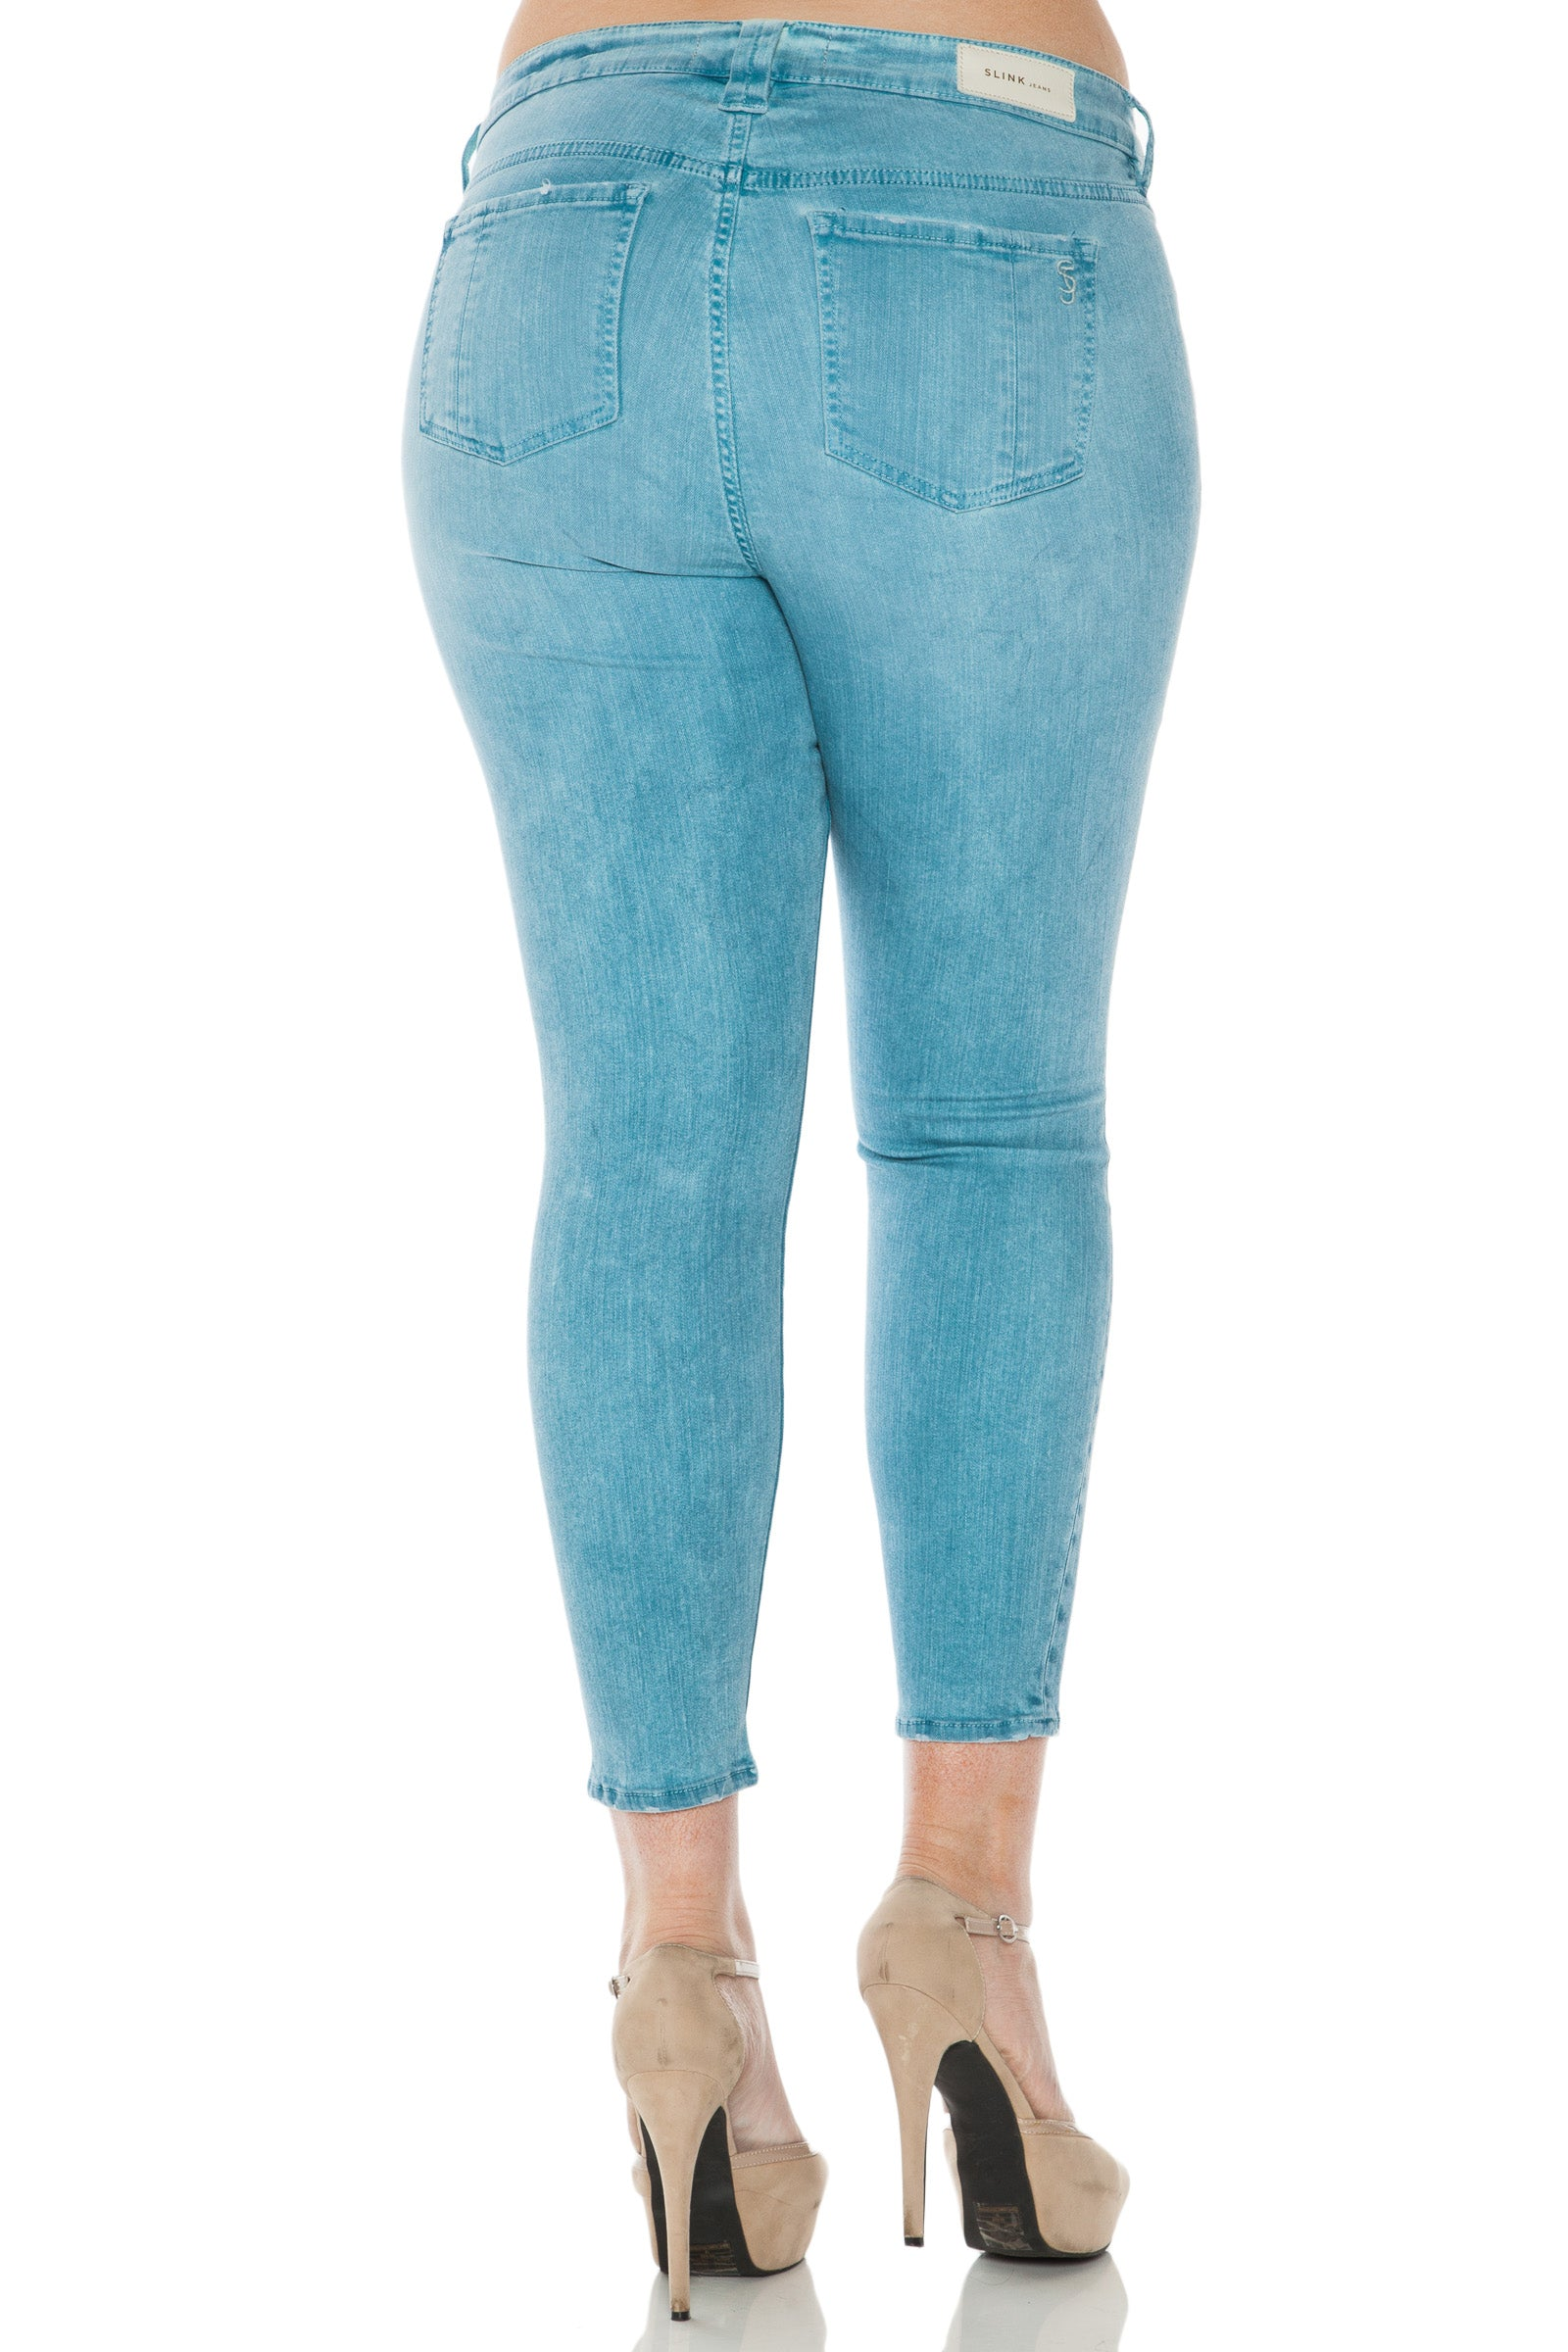 The Ice Dye Ankle Jegging - BLUE MIST